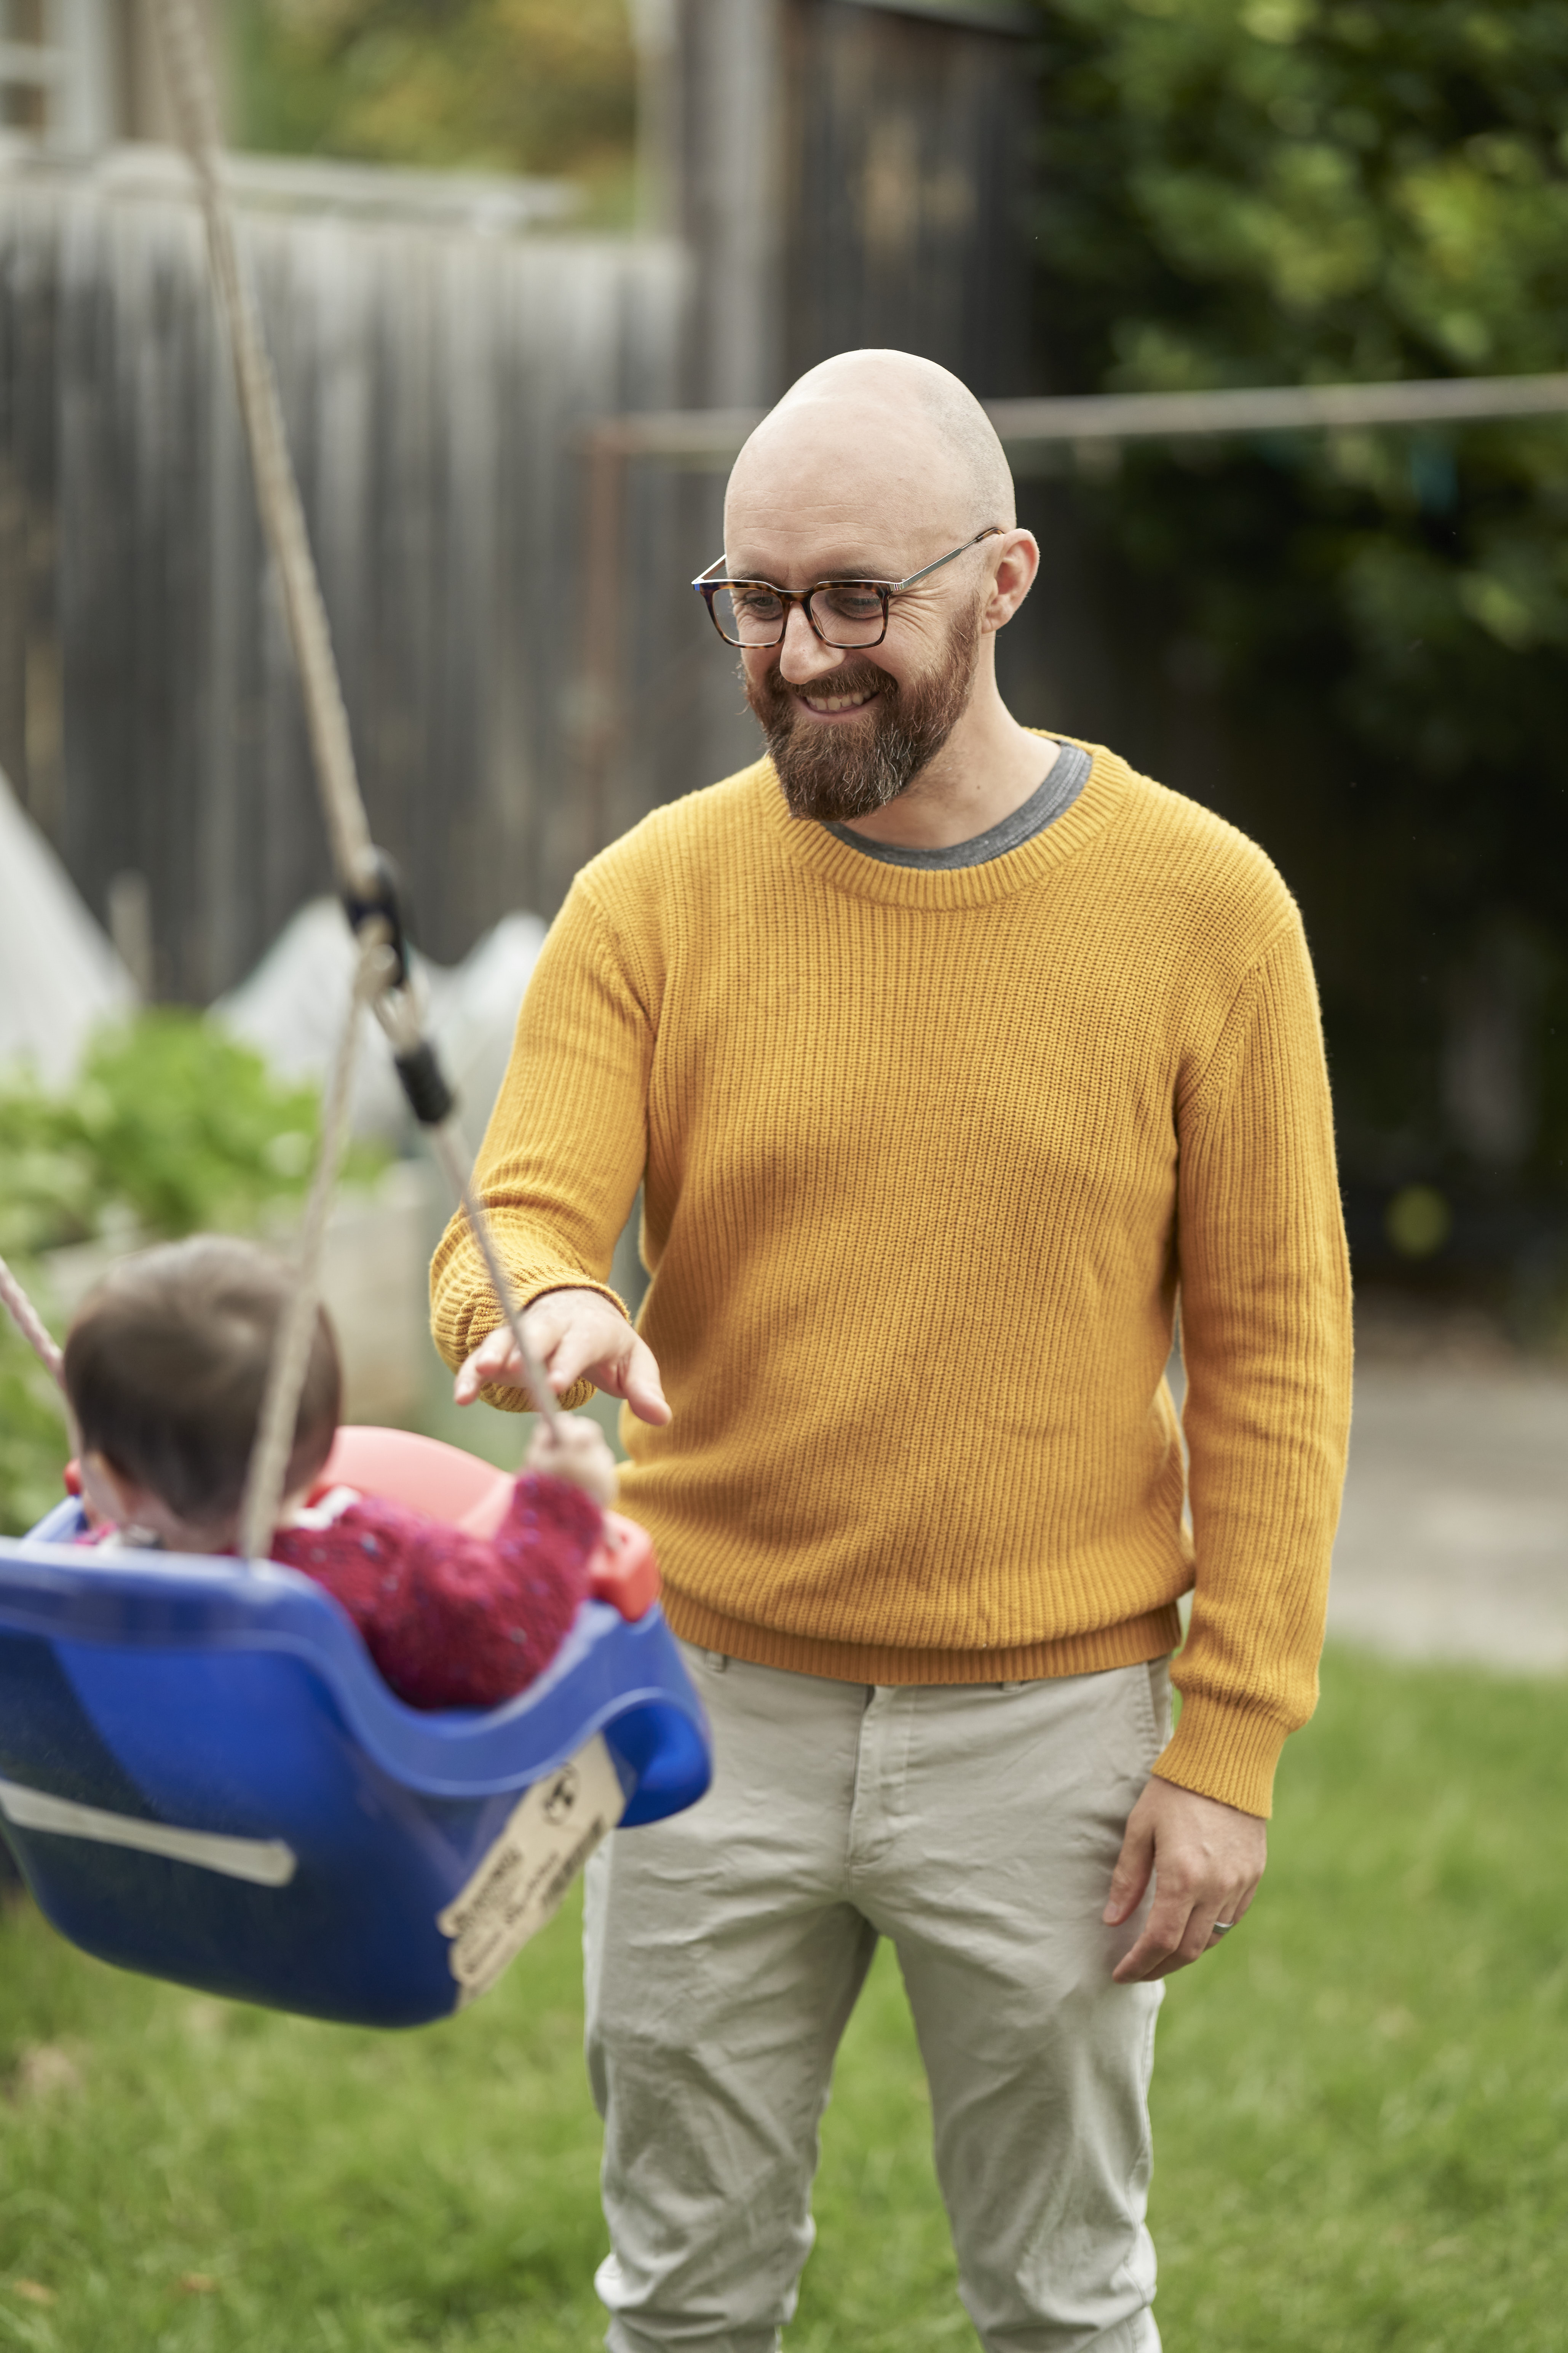 Simon pushing baby Margie on a swing in a backyard. Simon is wearing a yellow jumper and smiling